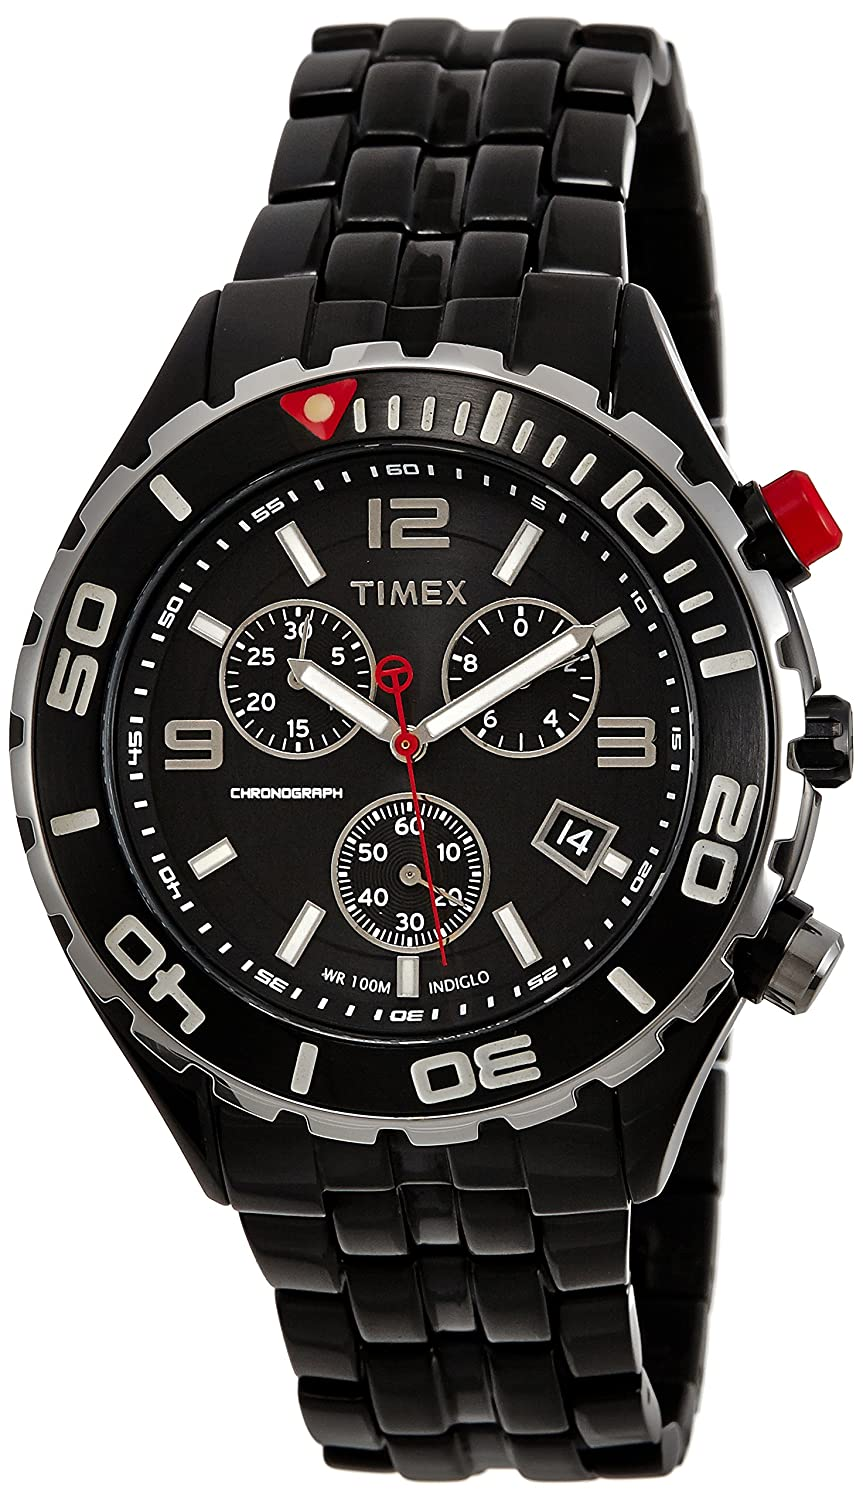 Amazon.com: Timex Mens T2M758 SL Stainless Steel Black Chronograph Watch: Timex: Watches